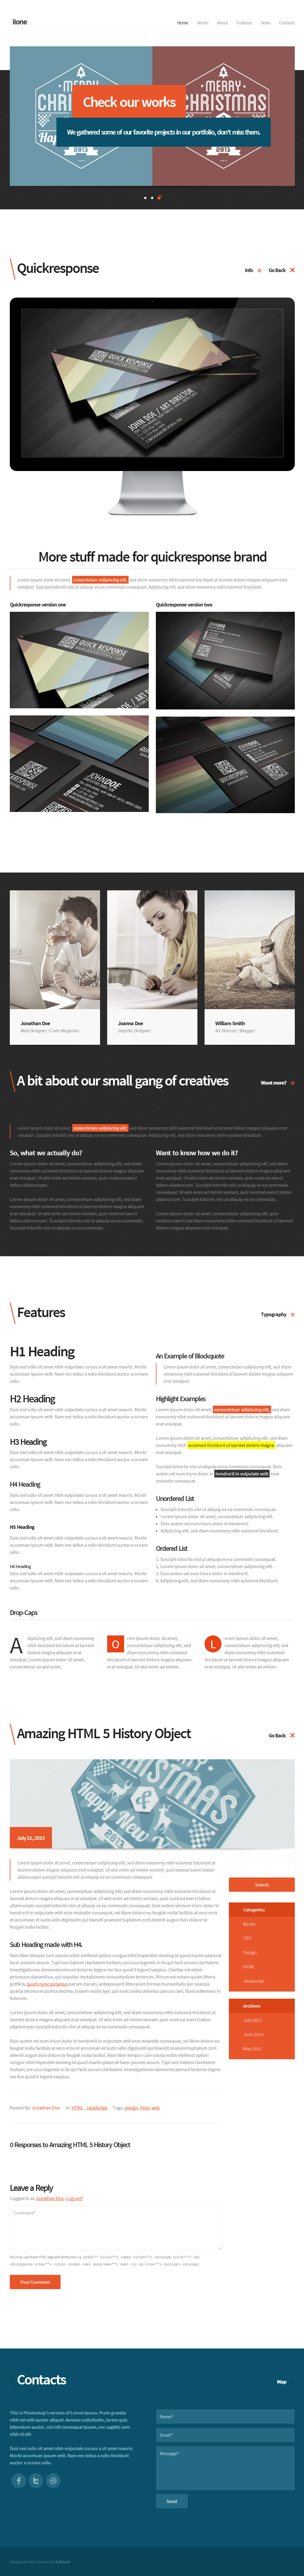 Ilone - One Page WordPress Theme - Screenshot 3. Front page with a blog post and a project open.